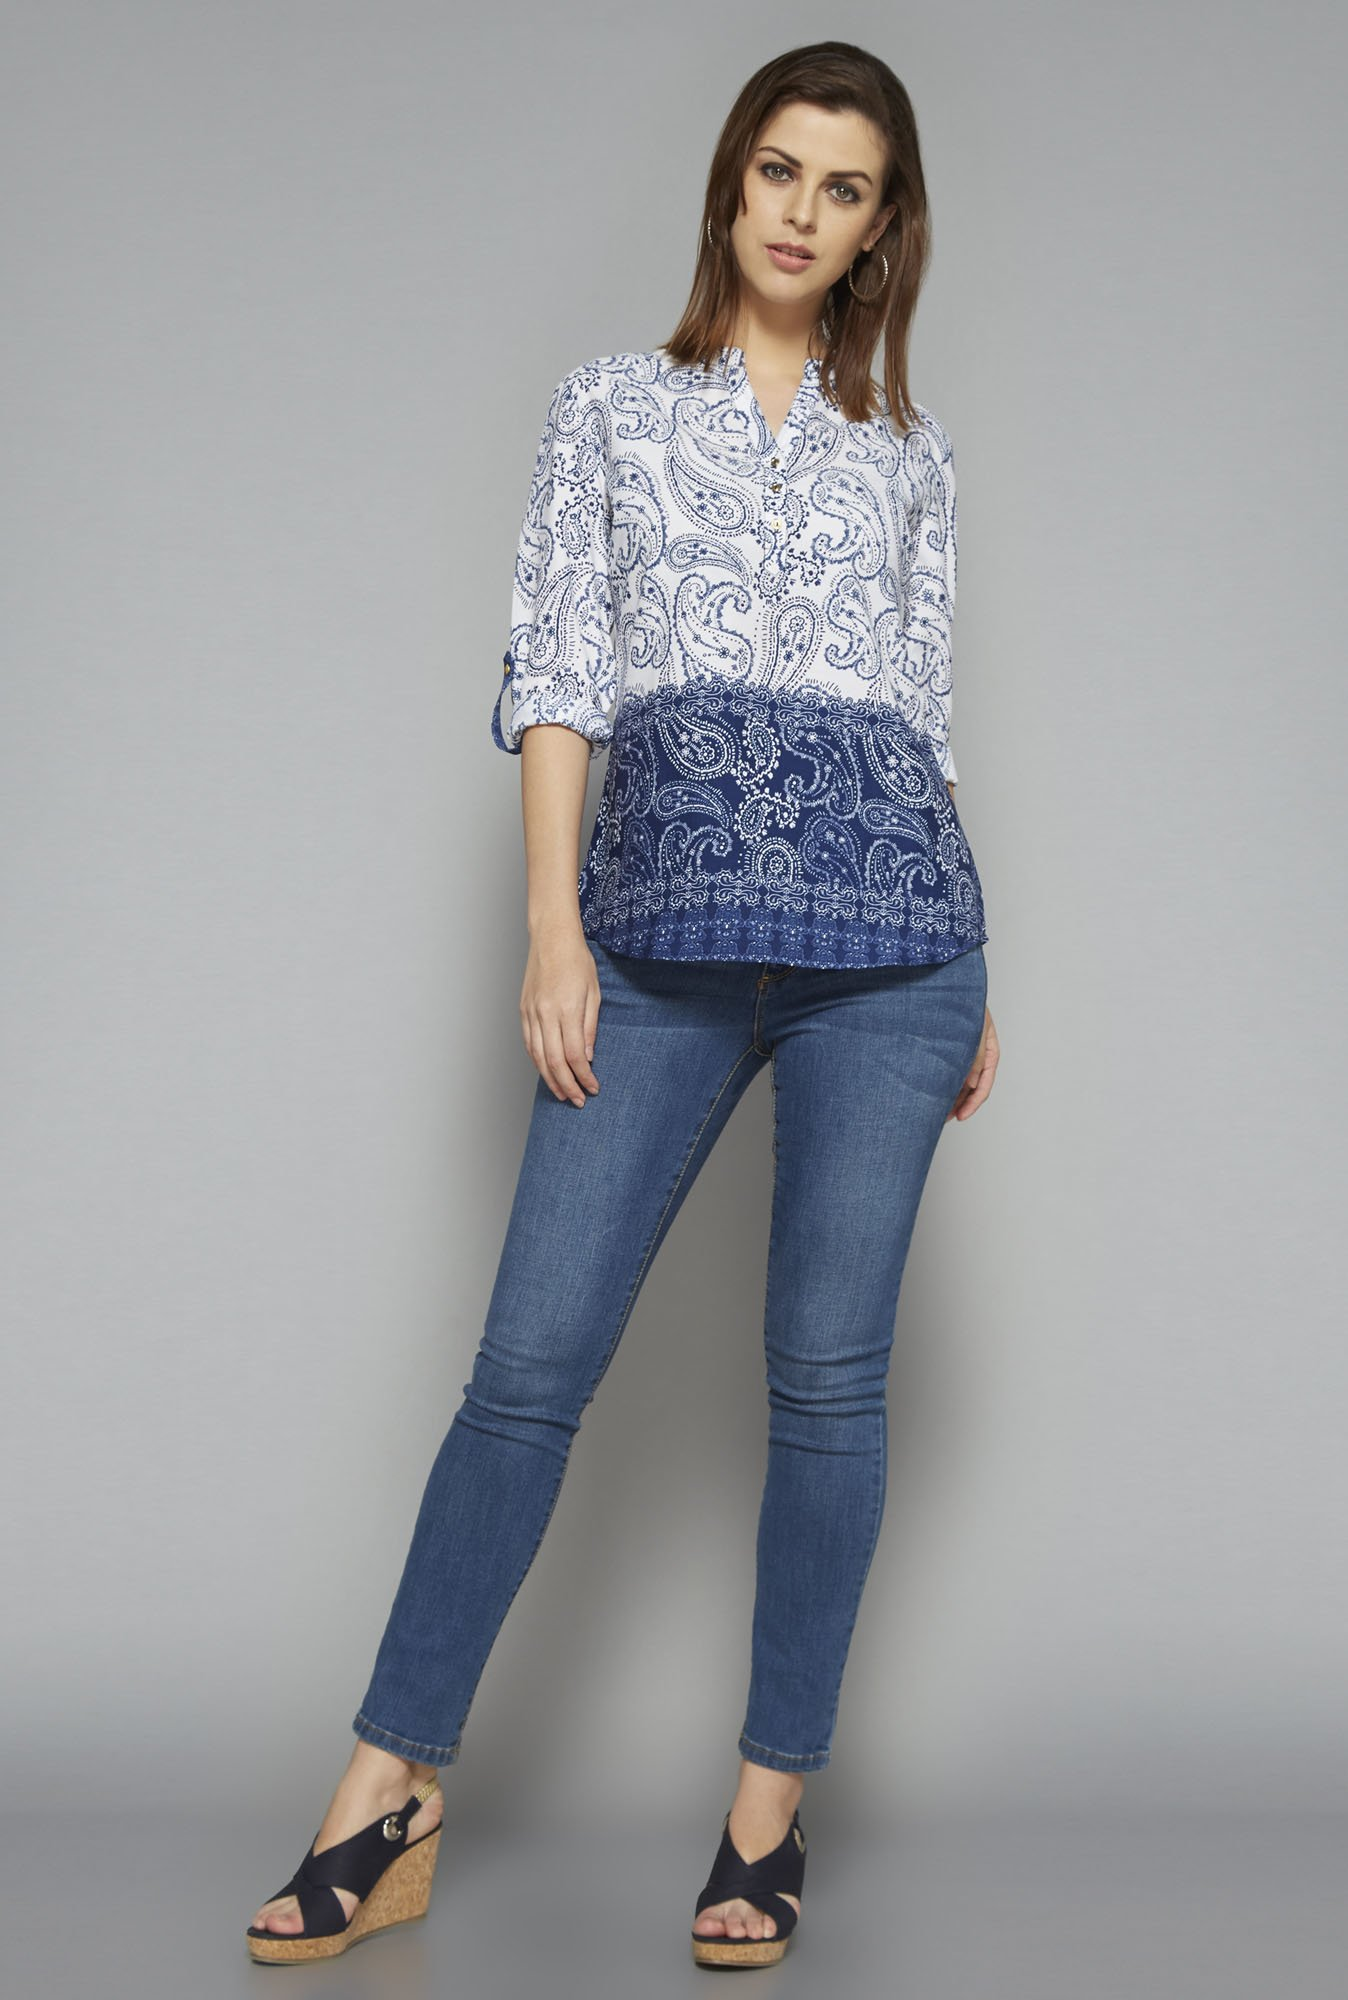 LOV by Westside Navy Keira Top